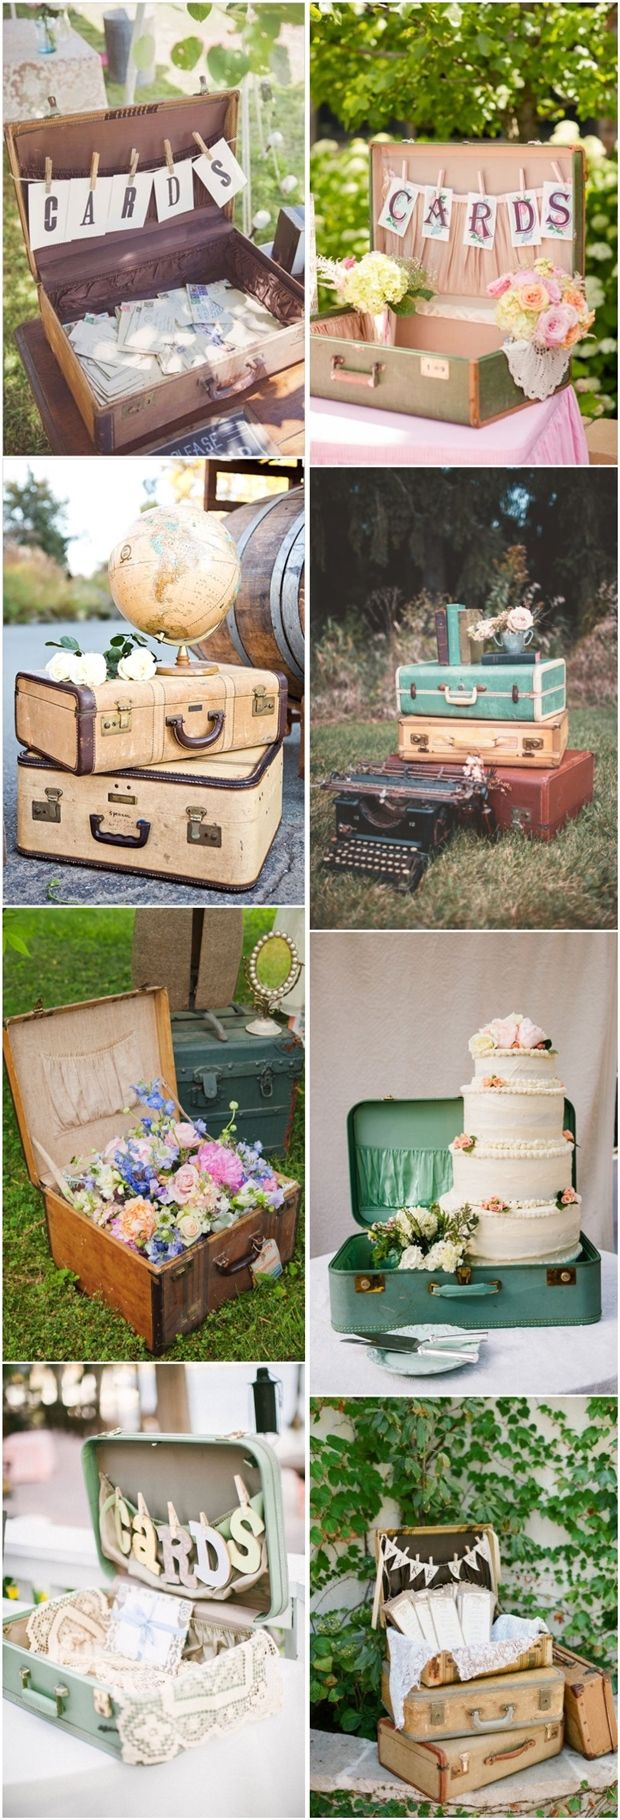 vintage suitcase wedding decor ideas